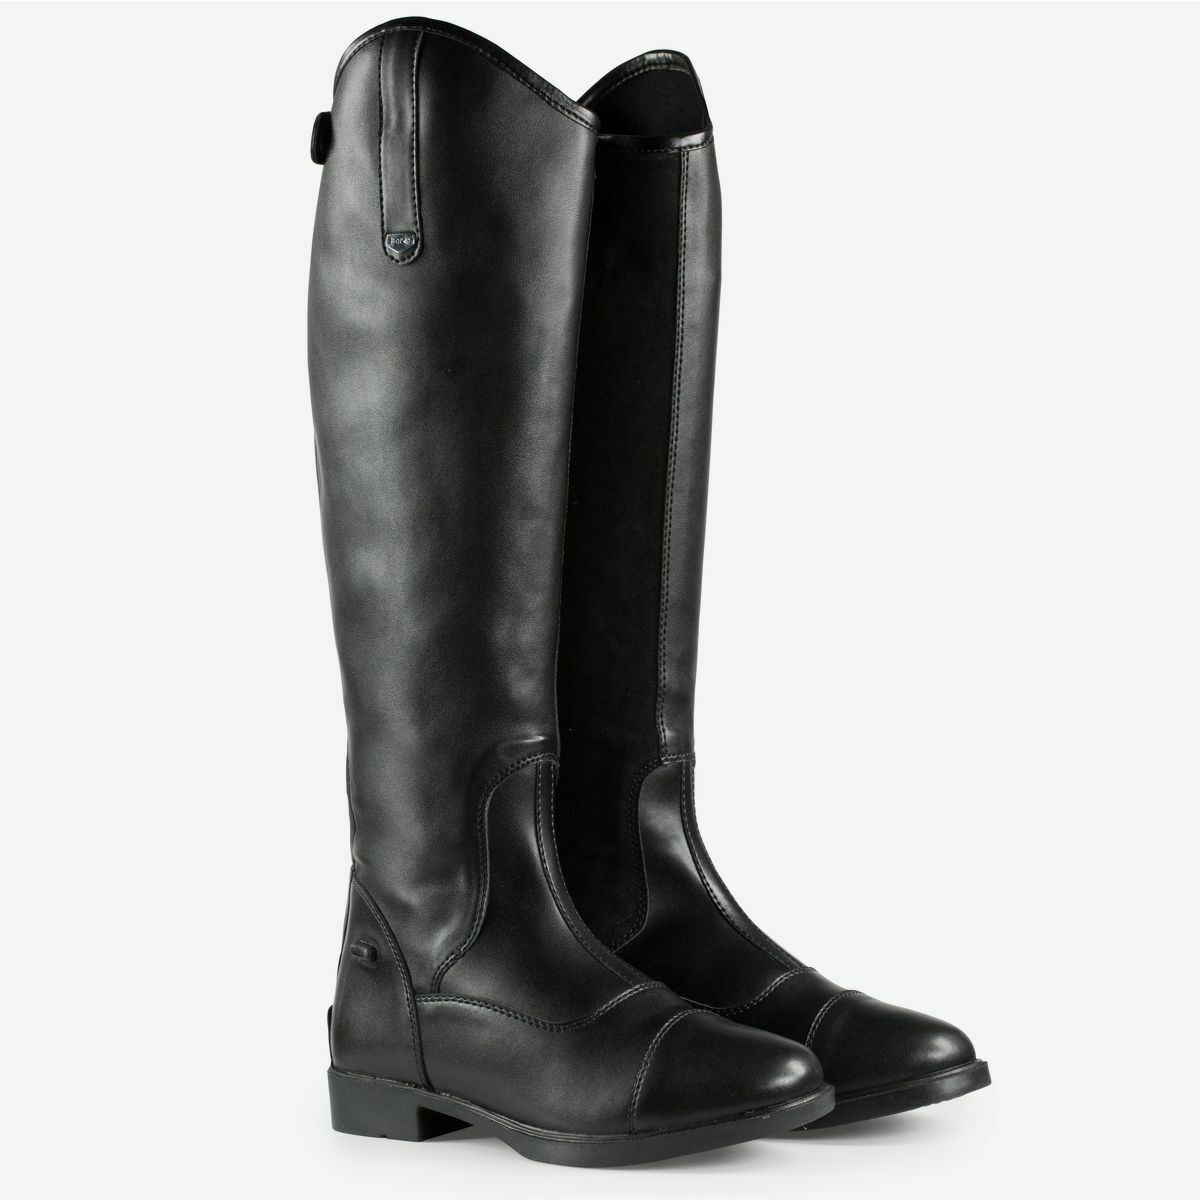 Horze Rover Synthetic Dressage  Tall Riding Boots with Rubber Sole  up to 50% off